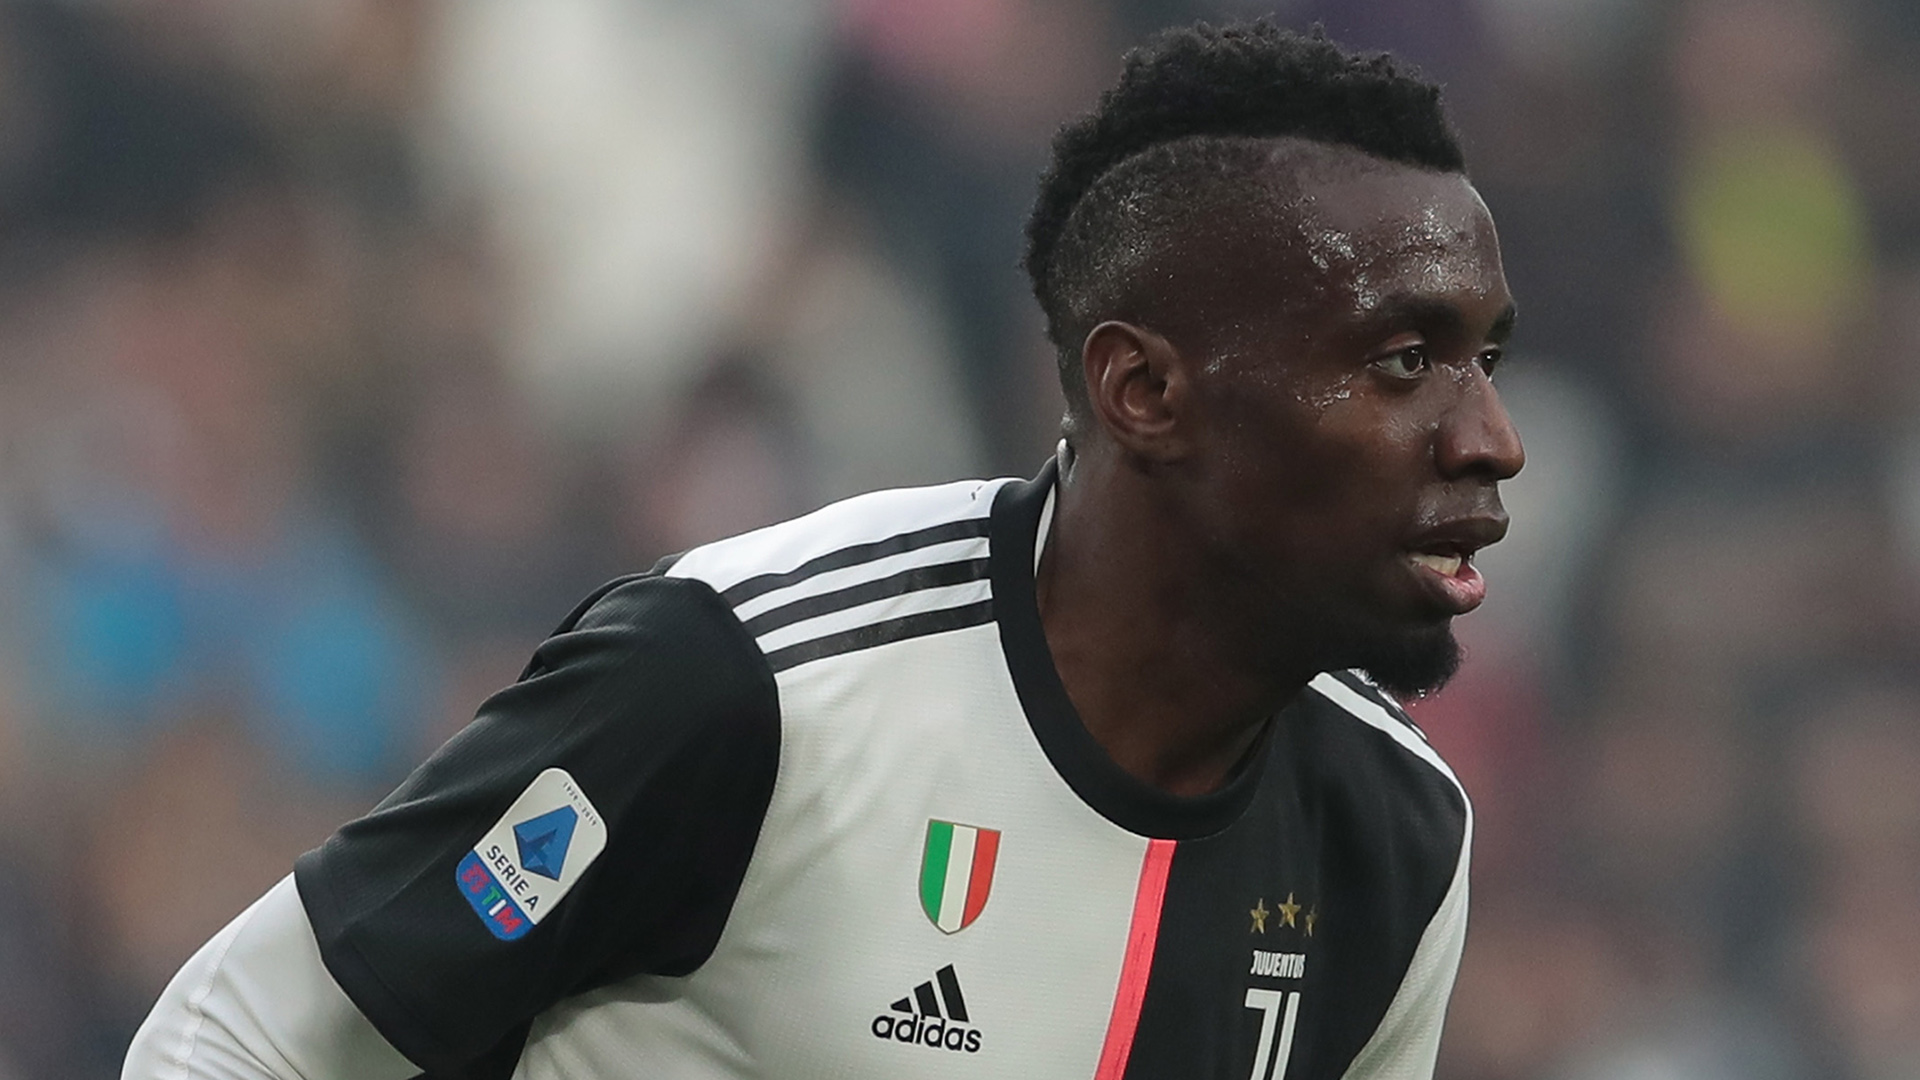 Juventus midfielder Matuidi signs contract extension through to 2021